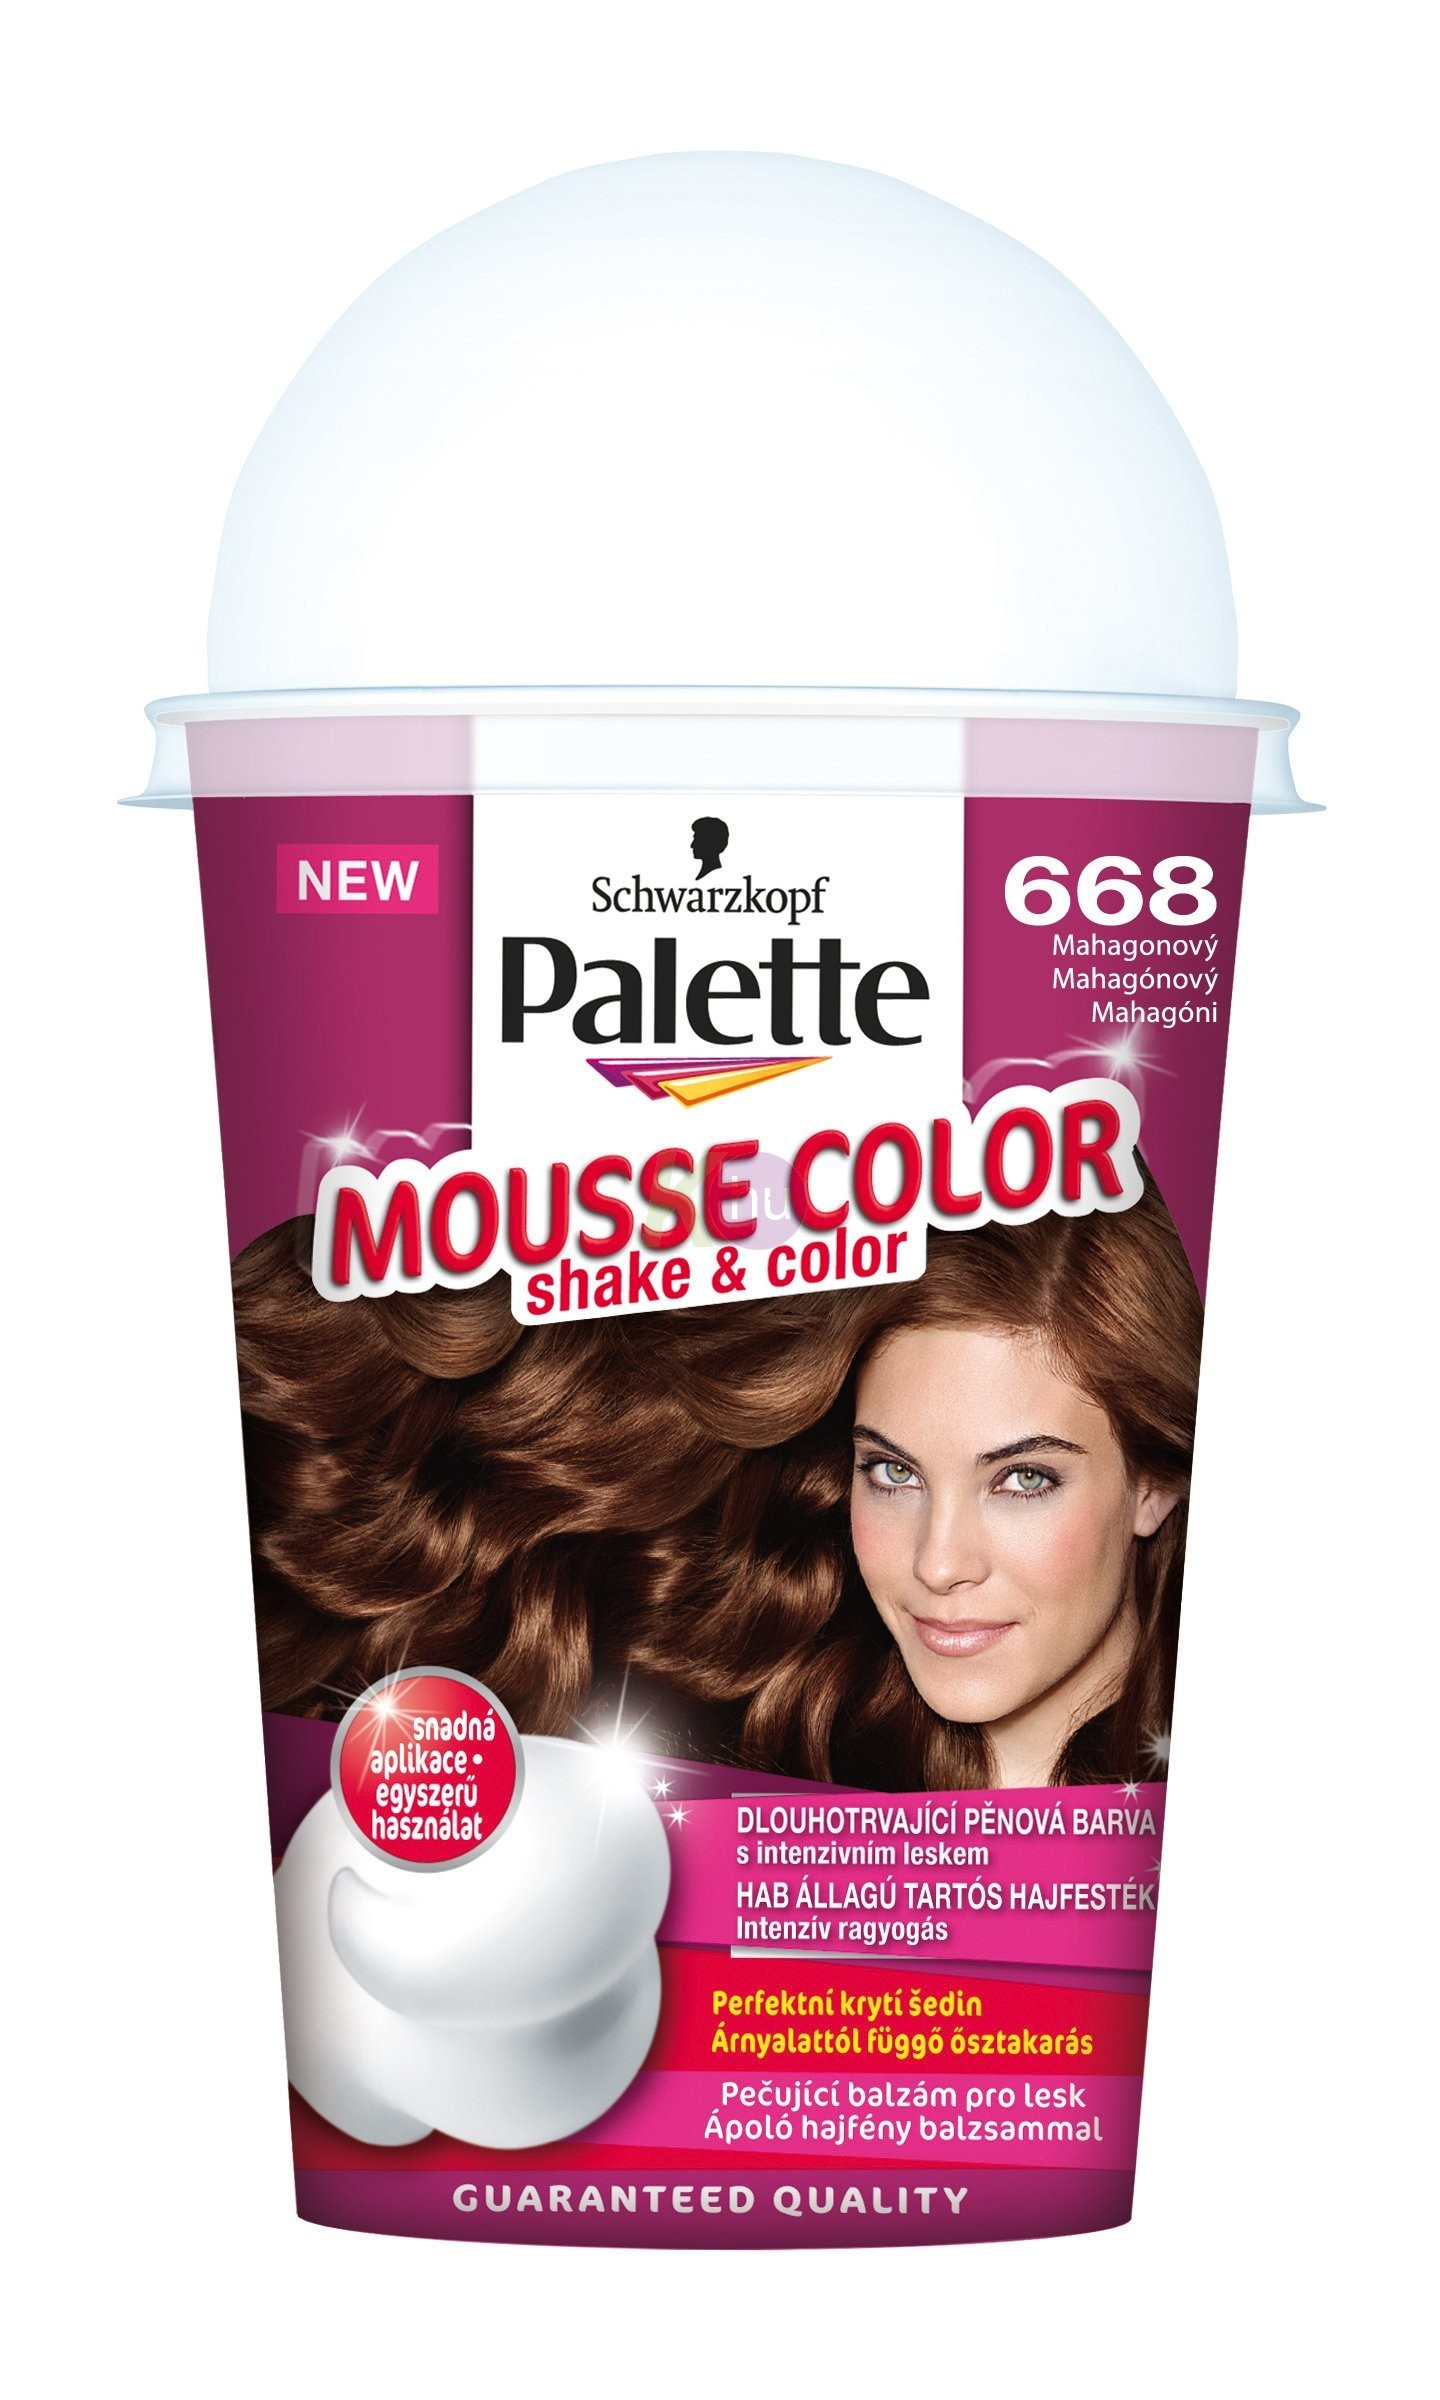 Palette Mousse Color 668 mahagóni 13100870